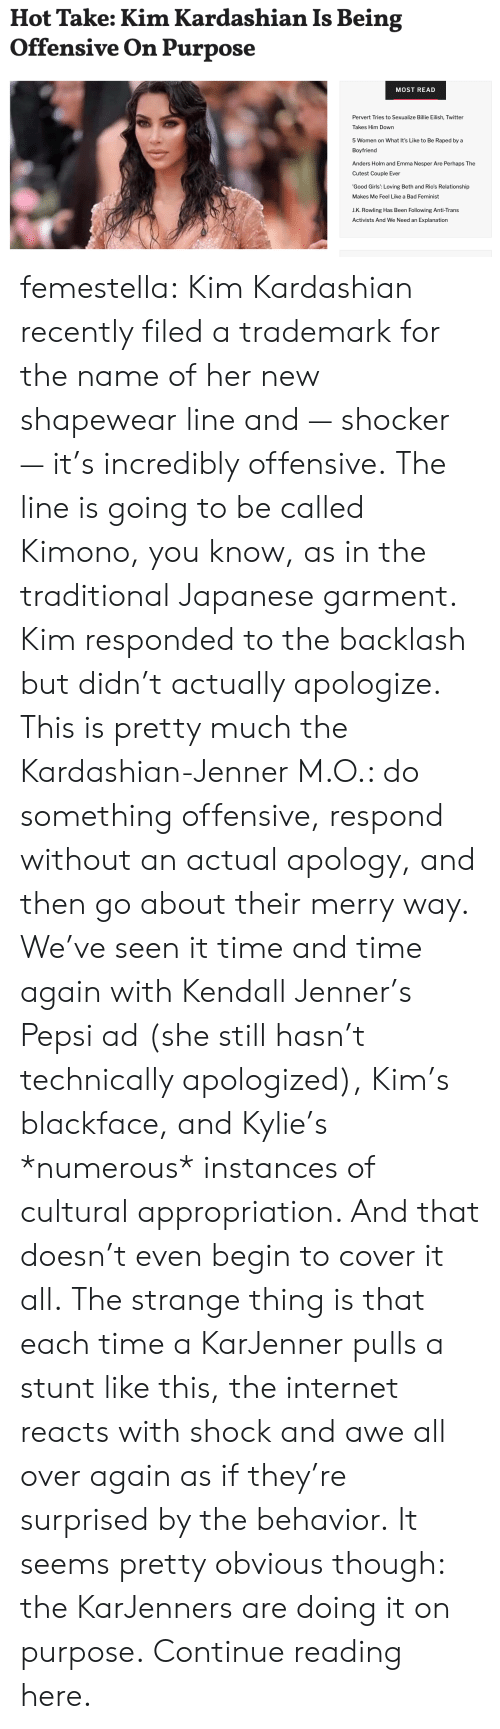 Cultural: Hot Take: Kim Kardashian Is Being  Offensive On Purpose  MOST READ  Pervert Tries to Sexualize Billie Eilish, Twitter  Takes Him Down  5 Women on What It's Like to Be Raped by a  Boyfriend  Anders Holm and Emma Nesper Are Perhaps The  Cutest Couple Ever  'Good Girls': Loving Beth and Rio's Relationship  Makes Me Feel Like a Bad Feminist  J.K. Rowling Has Been Following Anti-Trans  Activists And We Need an Explanation femestella: Kim Kardashian recently filed a trademark for the name of her new shapewear line and — shocker — it's incredibly offensive. The line is going to be called Kimono, you know, as in the traditional Japanese garment.  Kim responded to the backlash but didn't actually apologize. This is pretty much the Kardashian-Jenner M.O.: do something offensive, respond without an actual apology, and then go about their merry way. We've seen it time and time again with Kendall Jenner's Pepsi ad (she still hasn't technically apologized), Kim's blackface, and Kylie's *numerous* instances of cultural appropriation. And that doesn't even begin to cover it all. The strange thing is that each time a KarJenner pulls a stunt like this, the internet reacts with shock and awe all over again as if they're surprised by the behavior. It seems pretty obvious though: the KarJenners are doing it on purpose. Continue reading here.